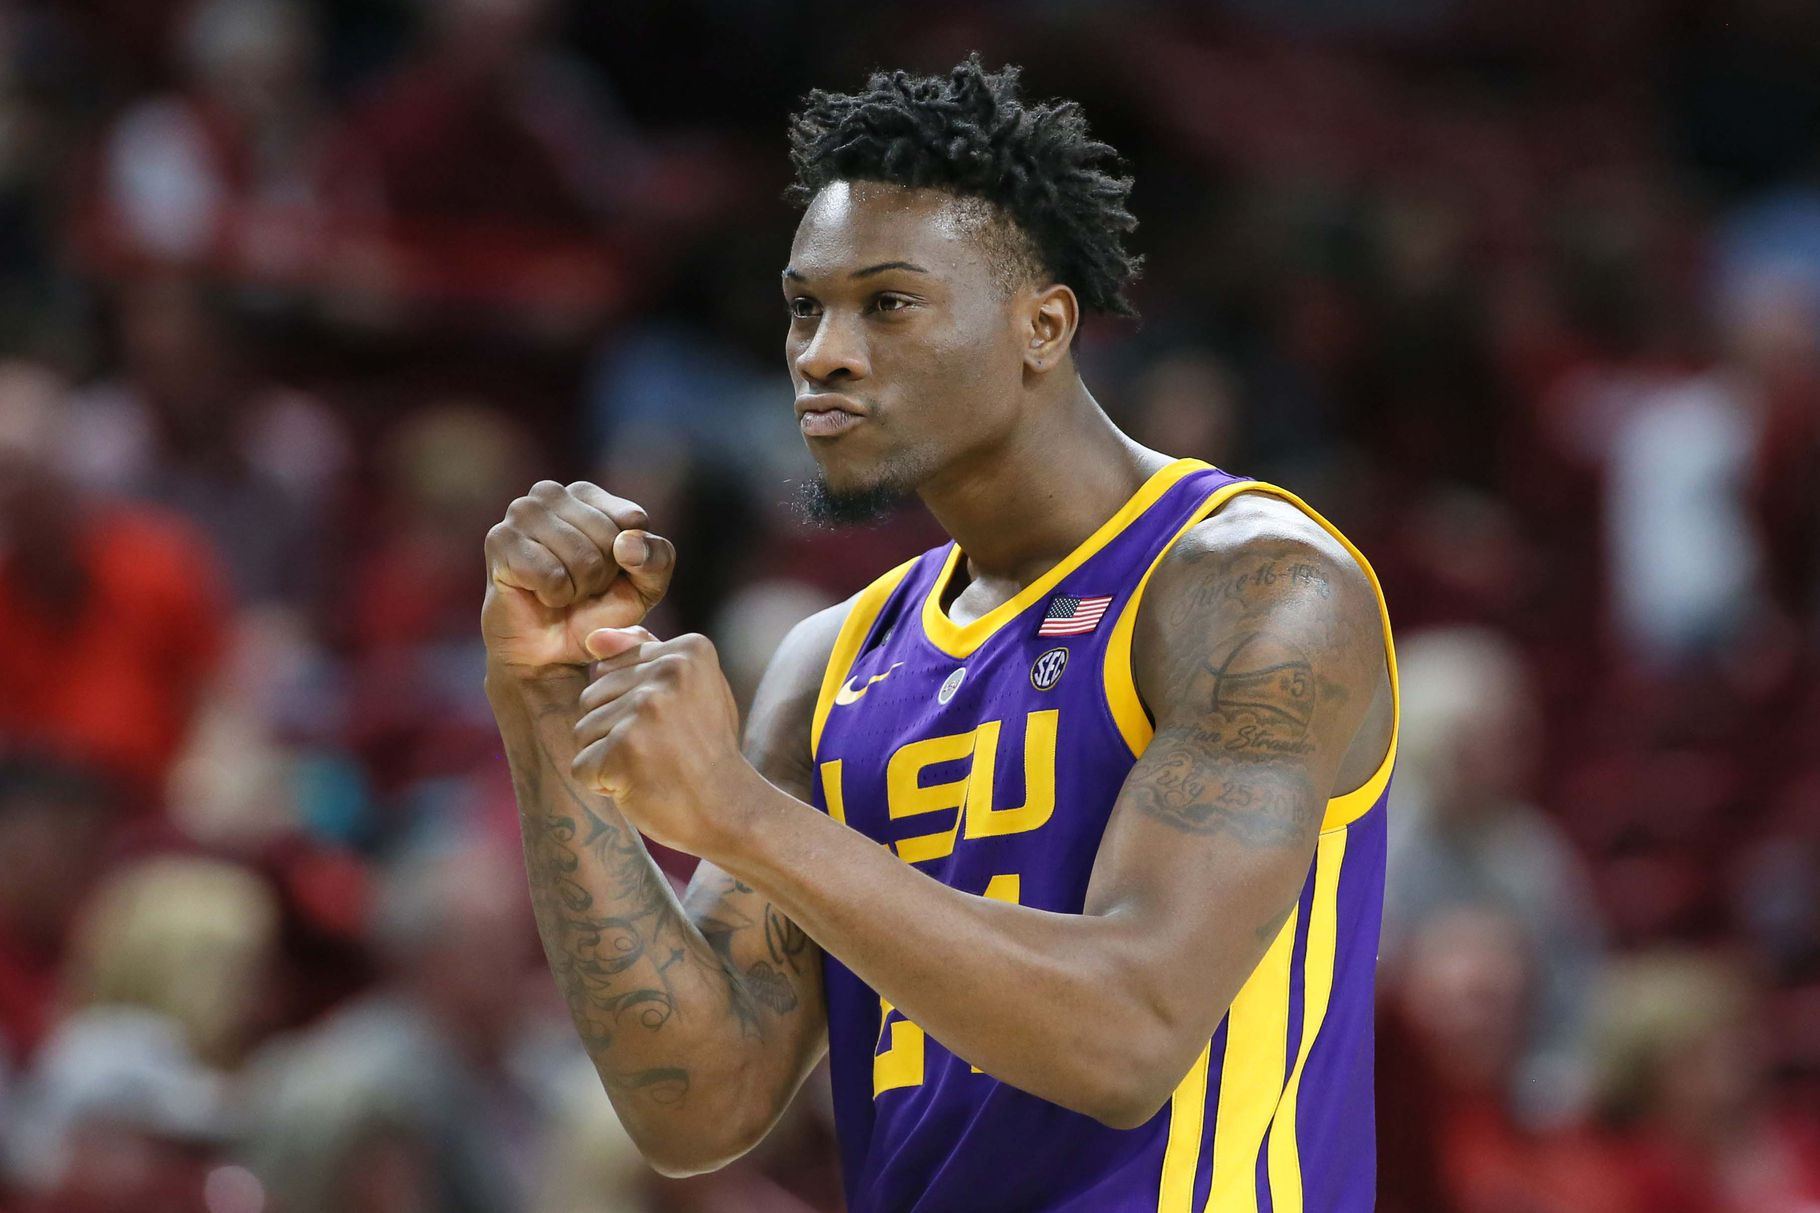 LSU the No. 1 seed in this week's SEC Tournament